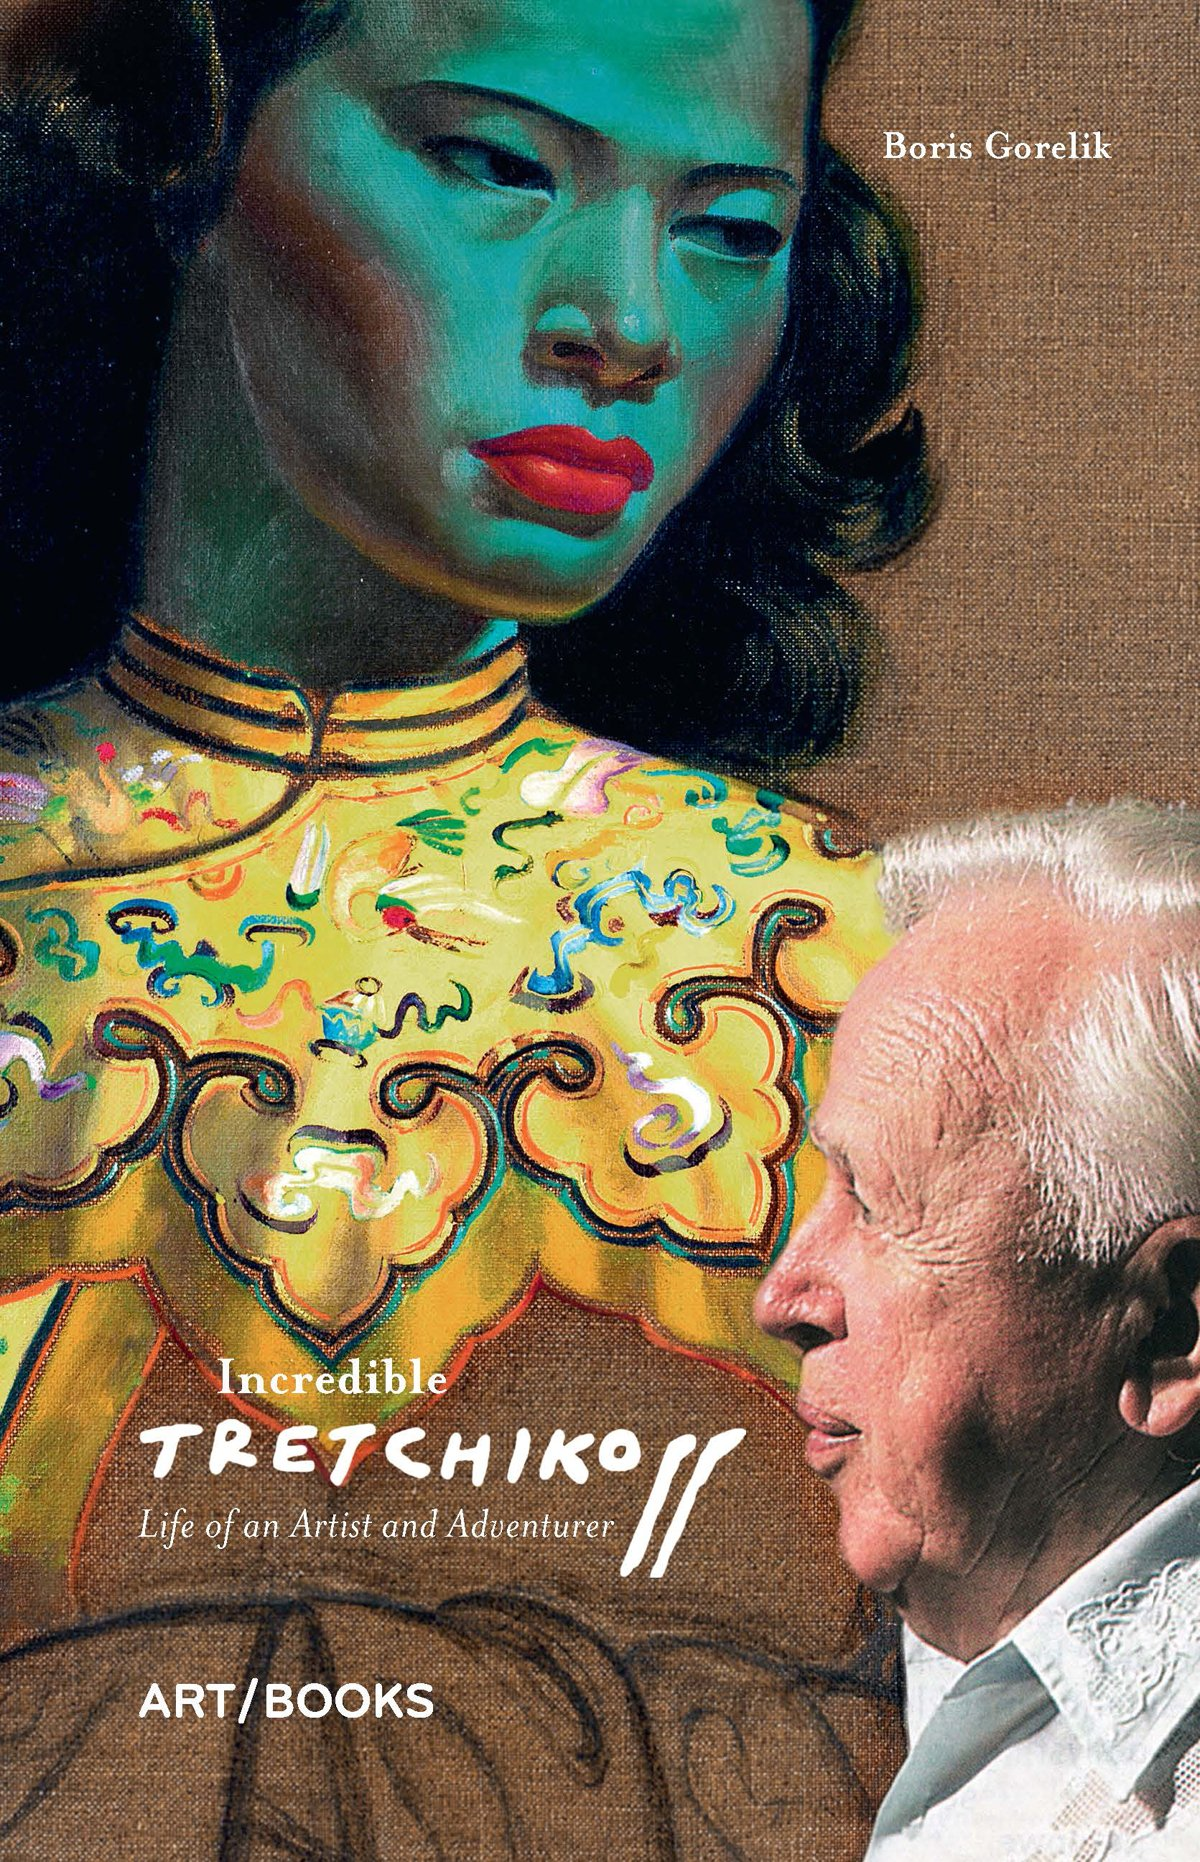 Incredible Tretchikoff: Life of an Artist and Adventurer PDF